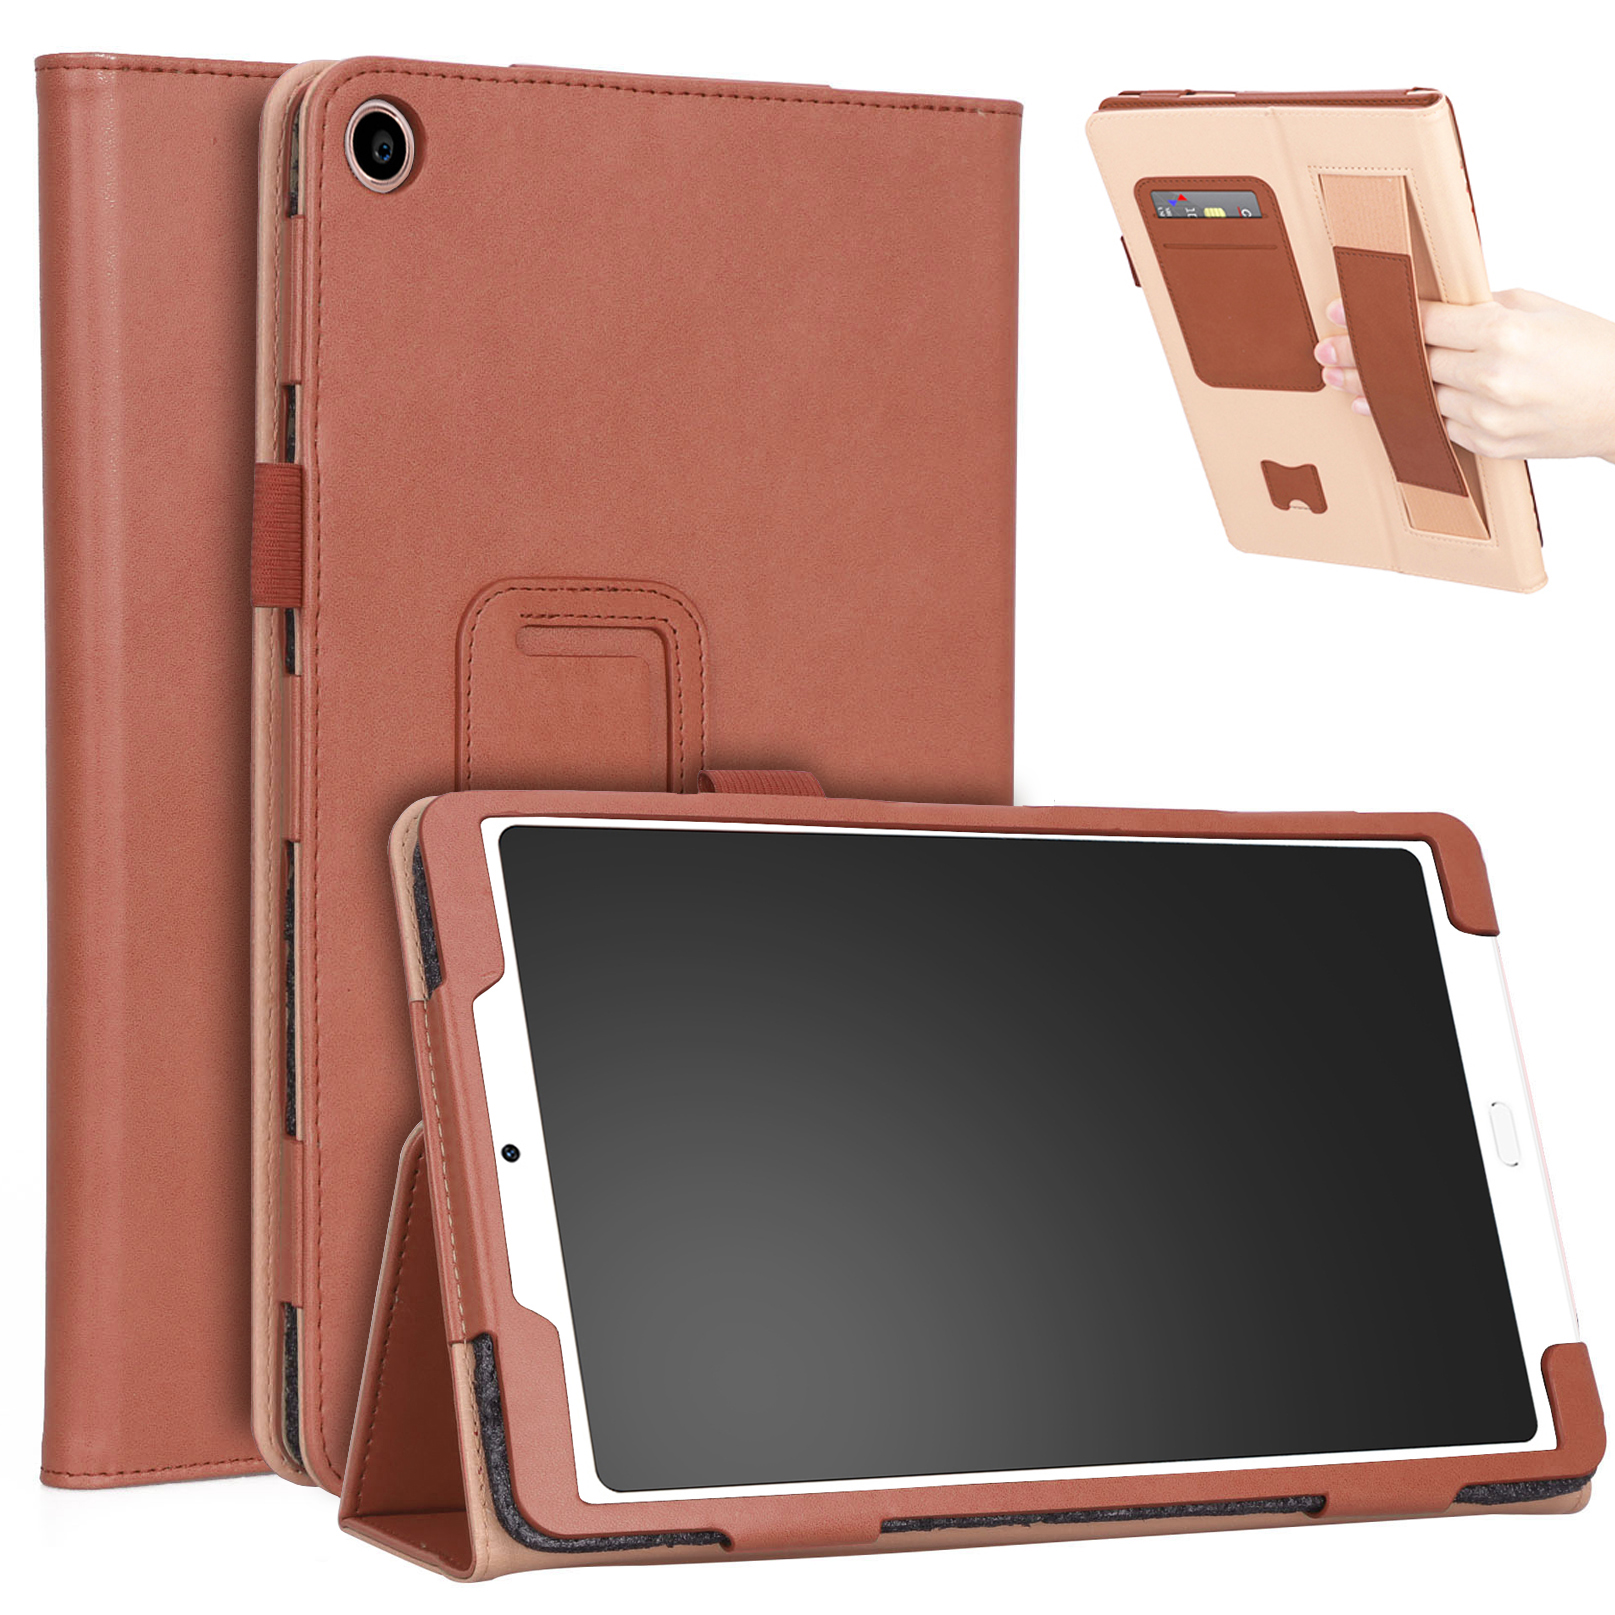 For Xiaomi tablet 4 plus 10.1 Retro Pattern PU Tablet Protective Case with Hand Support Card Slot Bracket Sleep Function brown_Xiaomi tablet 4 plus 10.1